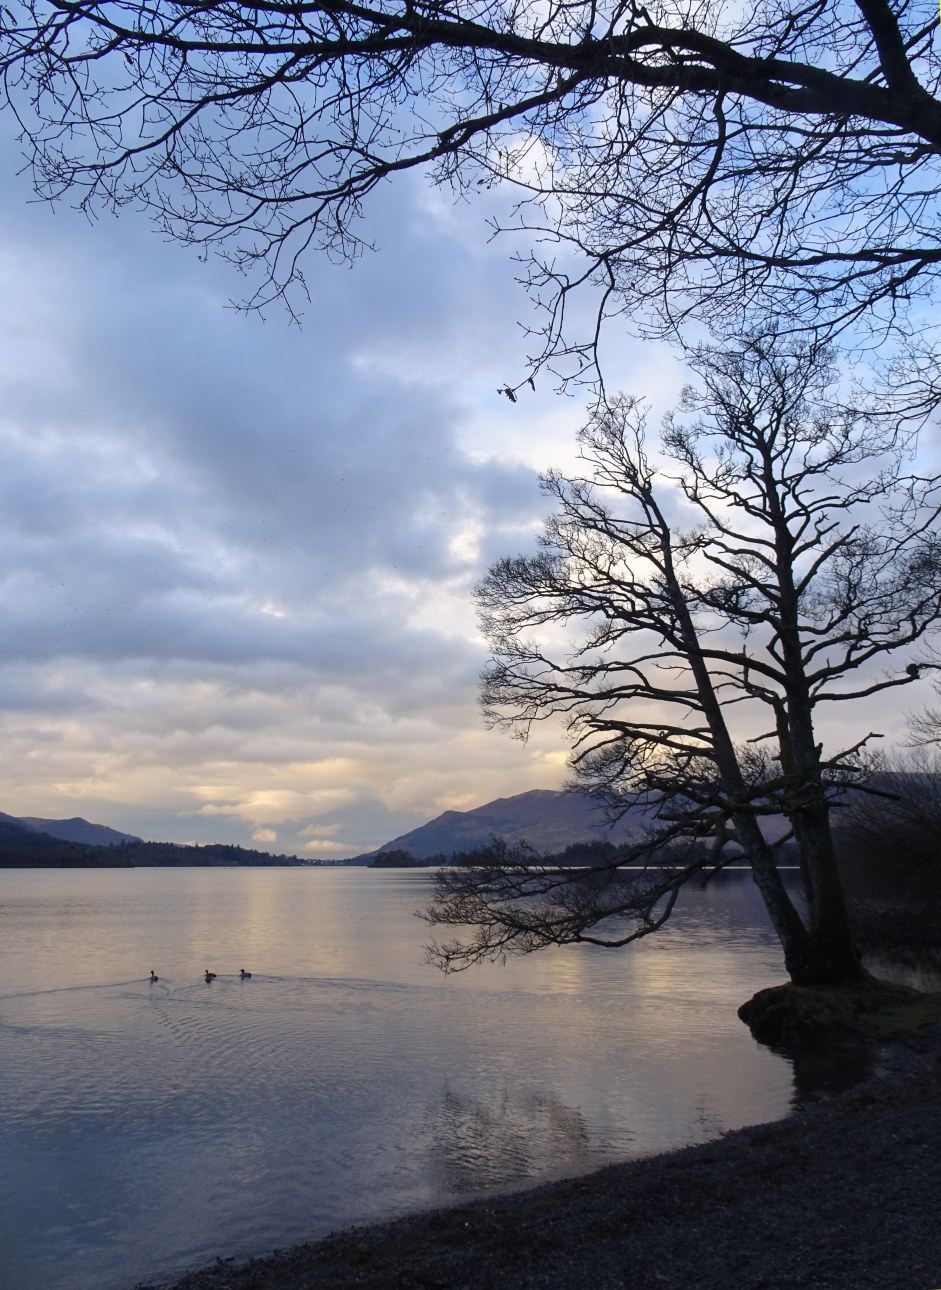 Down Derwentwater with the light dimming fast. Taken at 5:29pm.